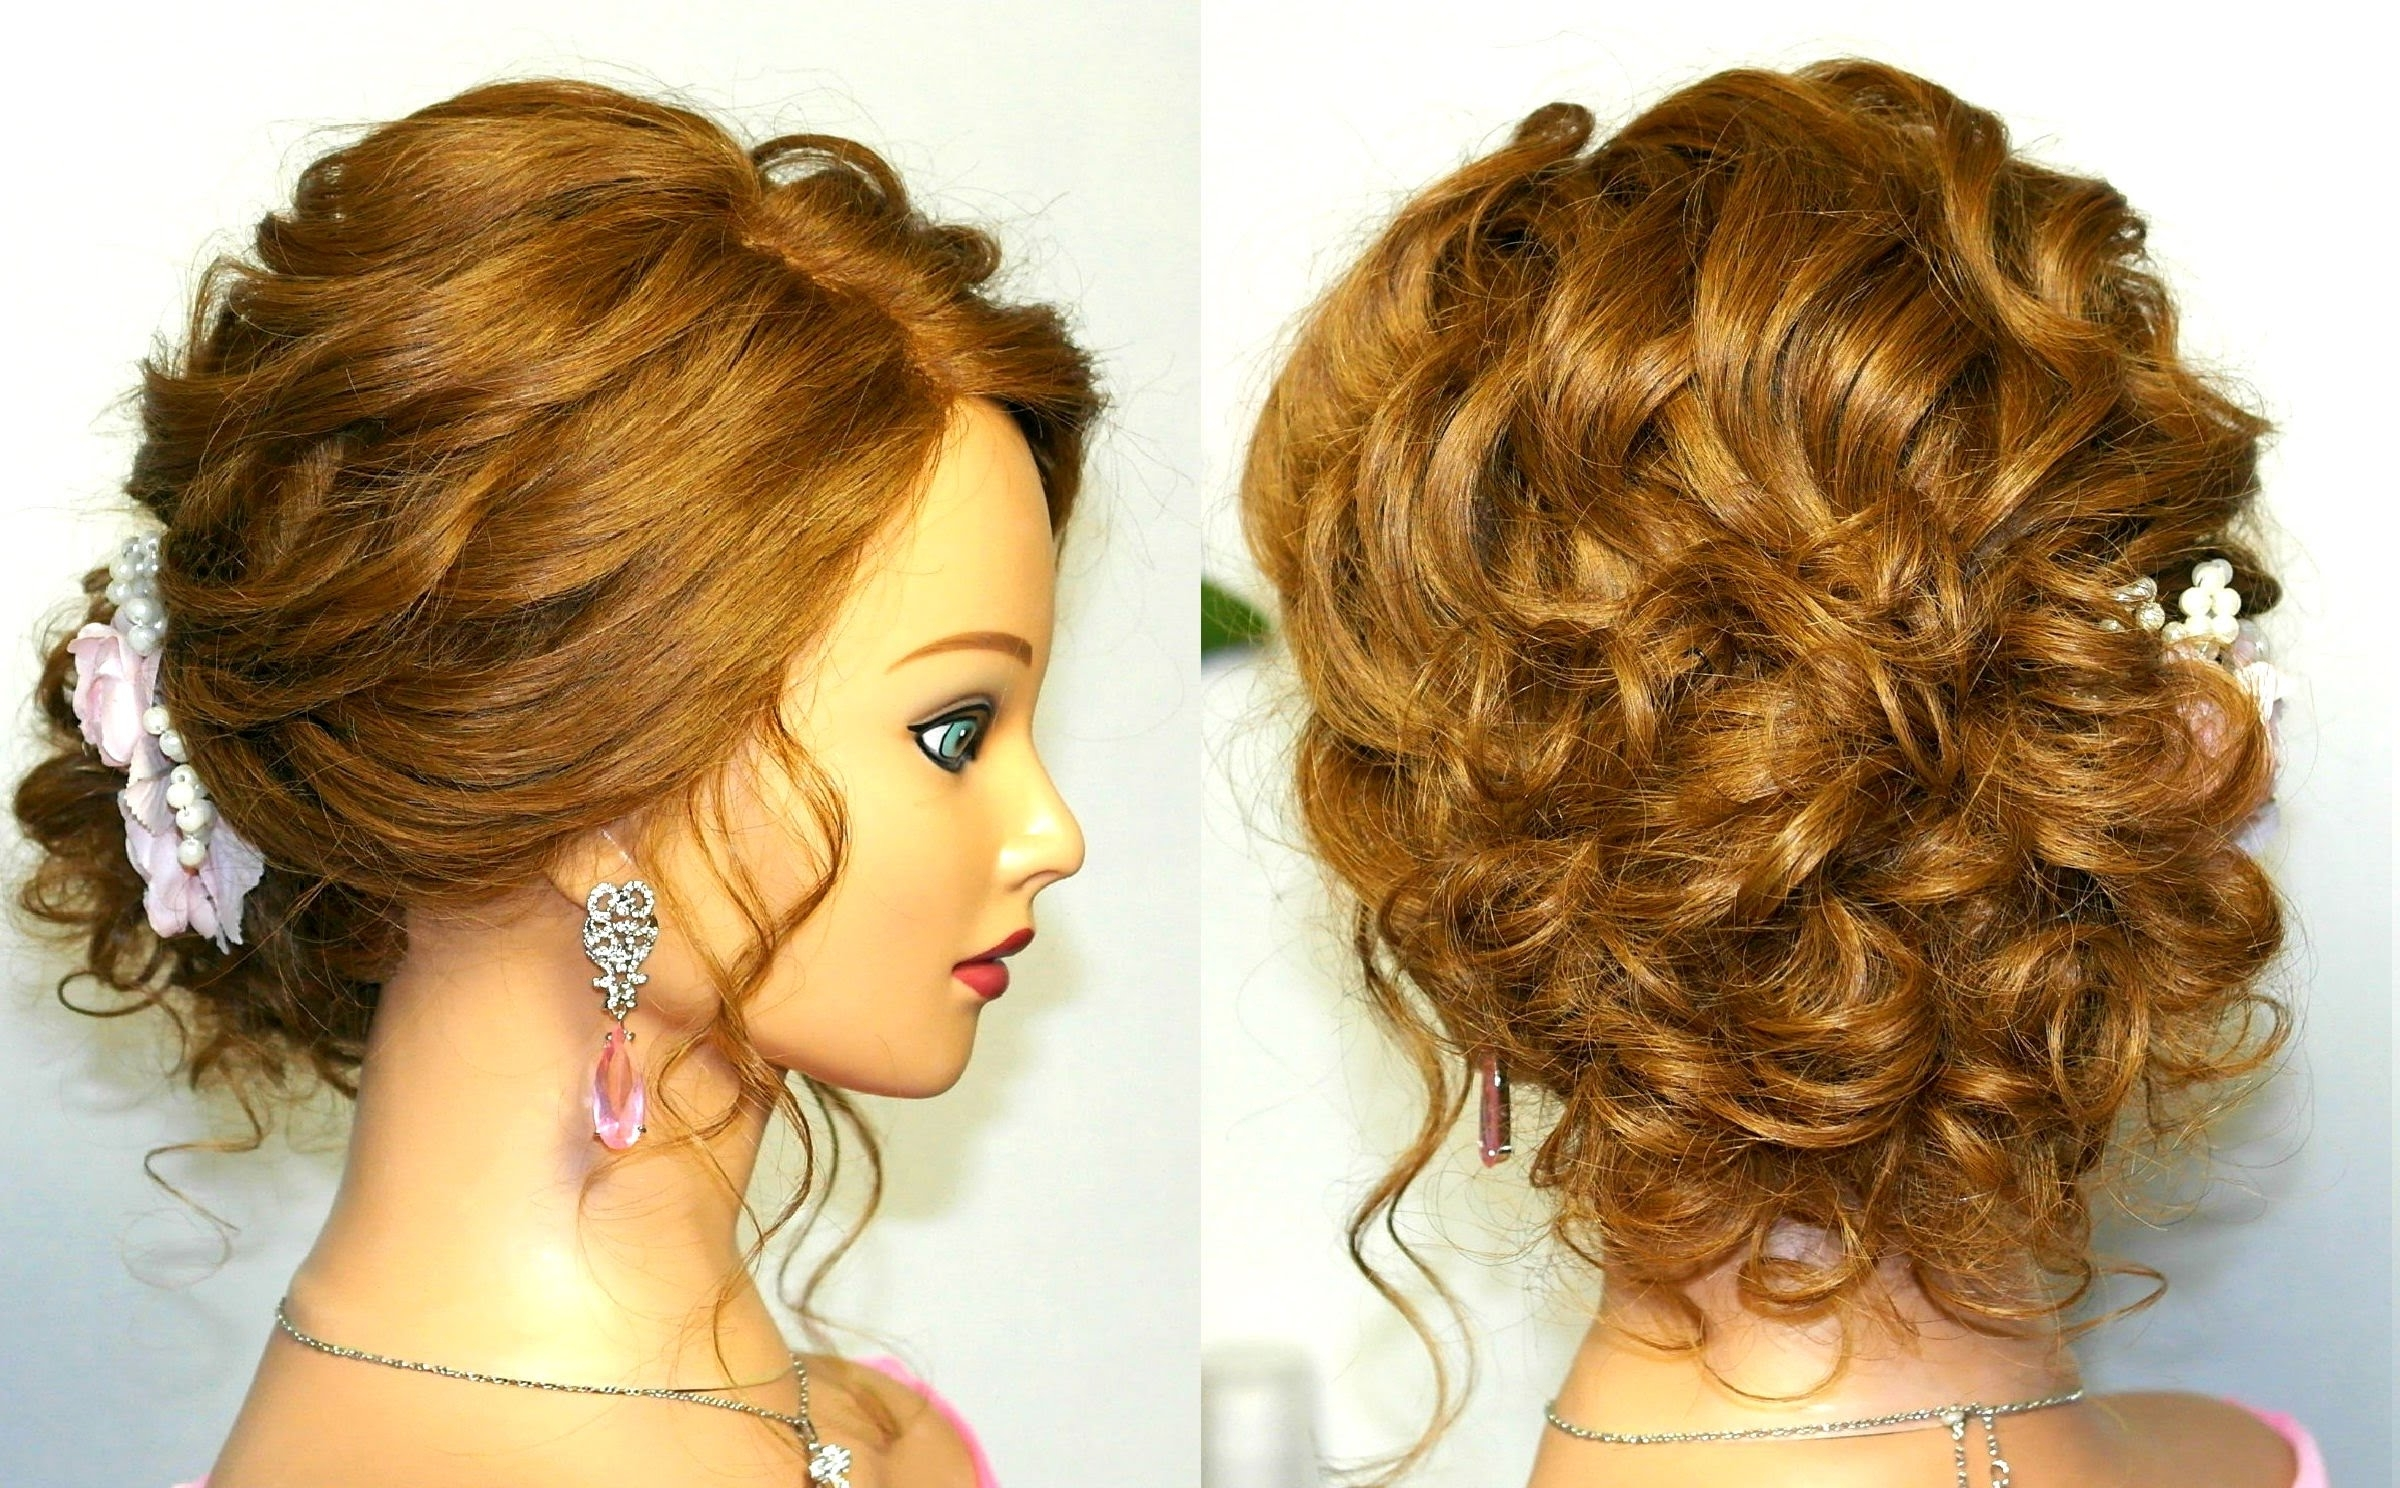 Most Recently Released Prom Wedding Hairstyles For Long Medium Hair With Regard To Prom Wedding Hairstyle, Curly Updo For Long Medium Hair Tutorial (View 11 of 15)